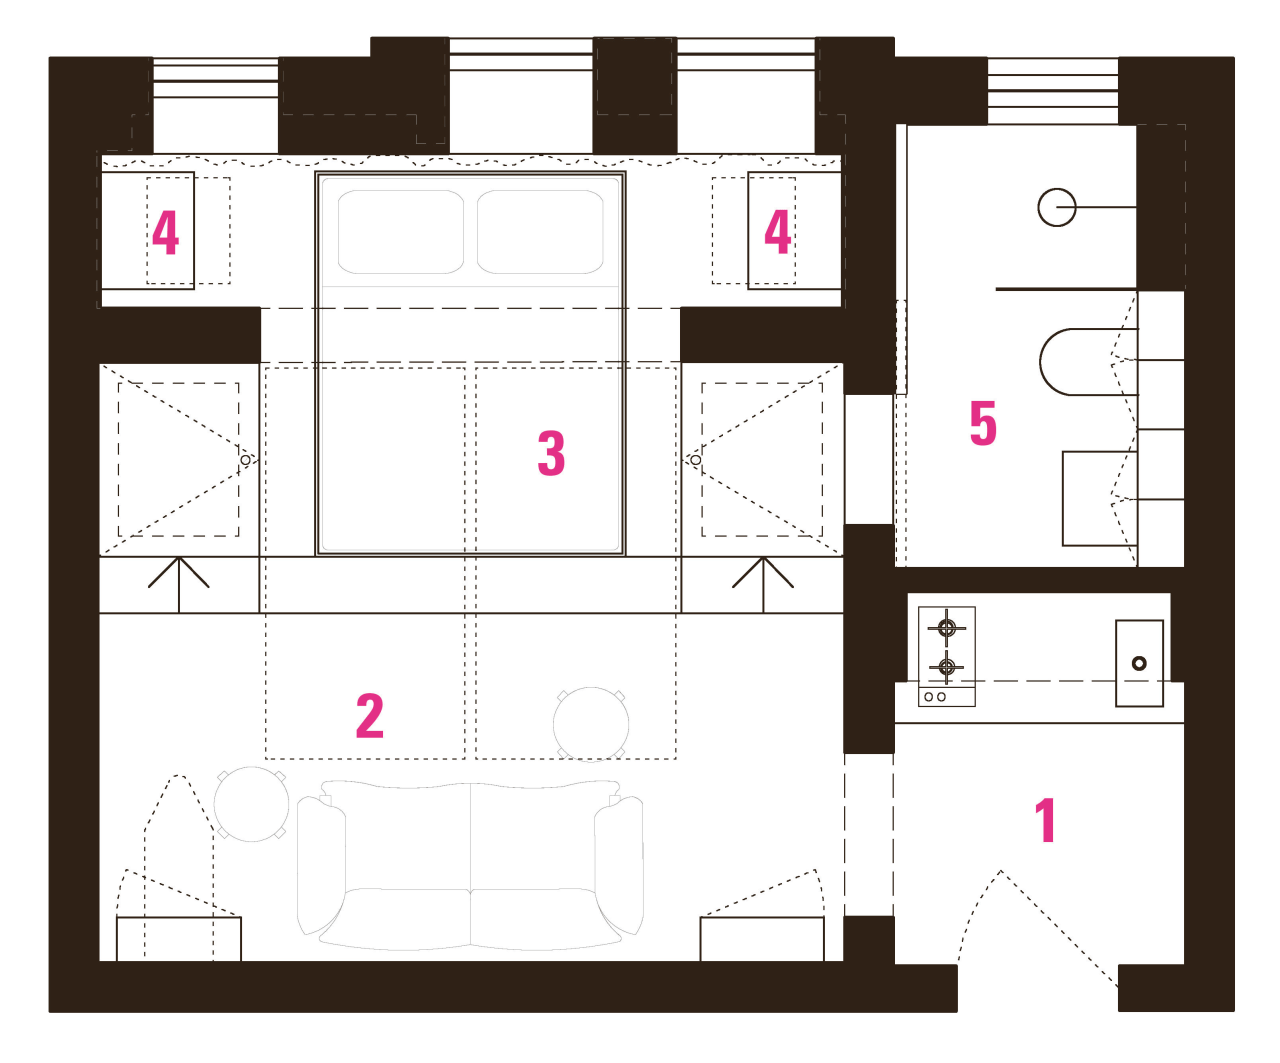 A space-hogging tub was removed in this studio area, design, floor plan, line, pattern, plan, product design, schematic, square, text, white